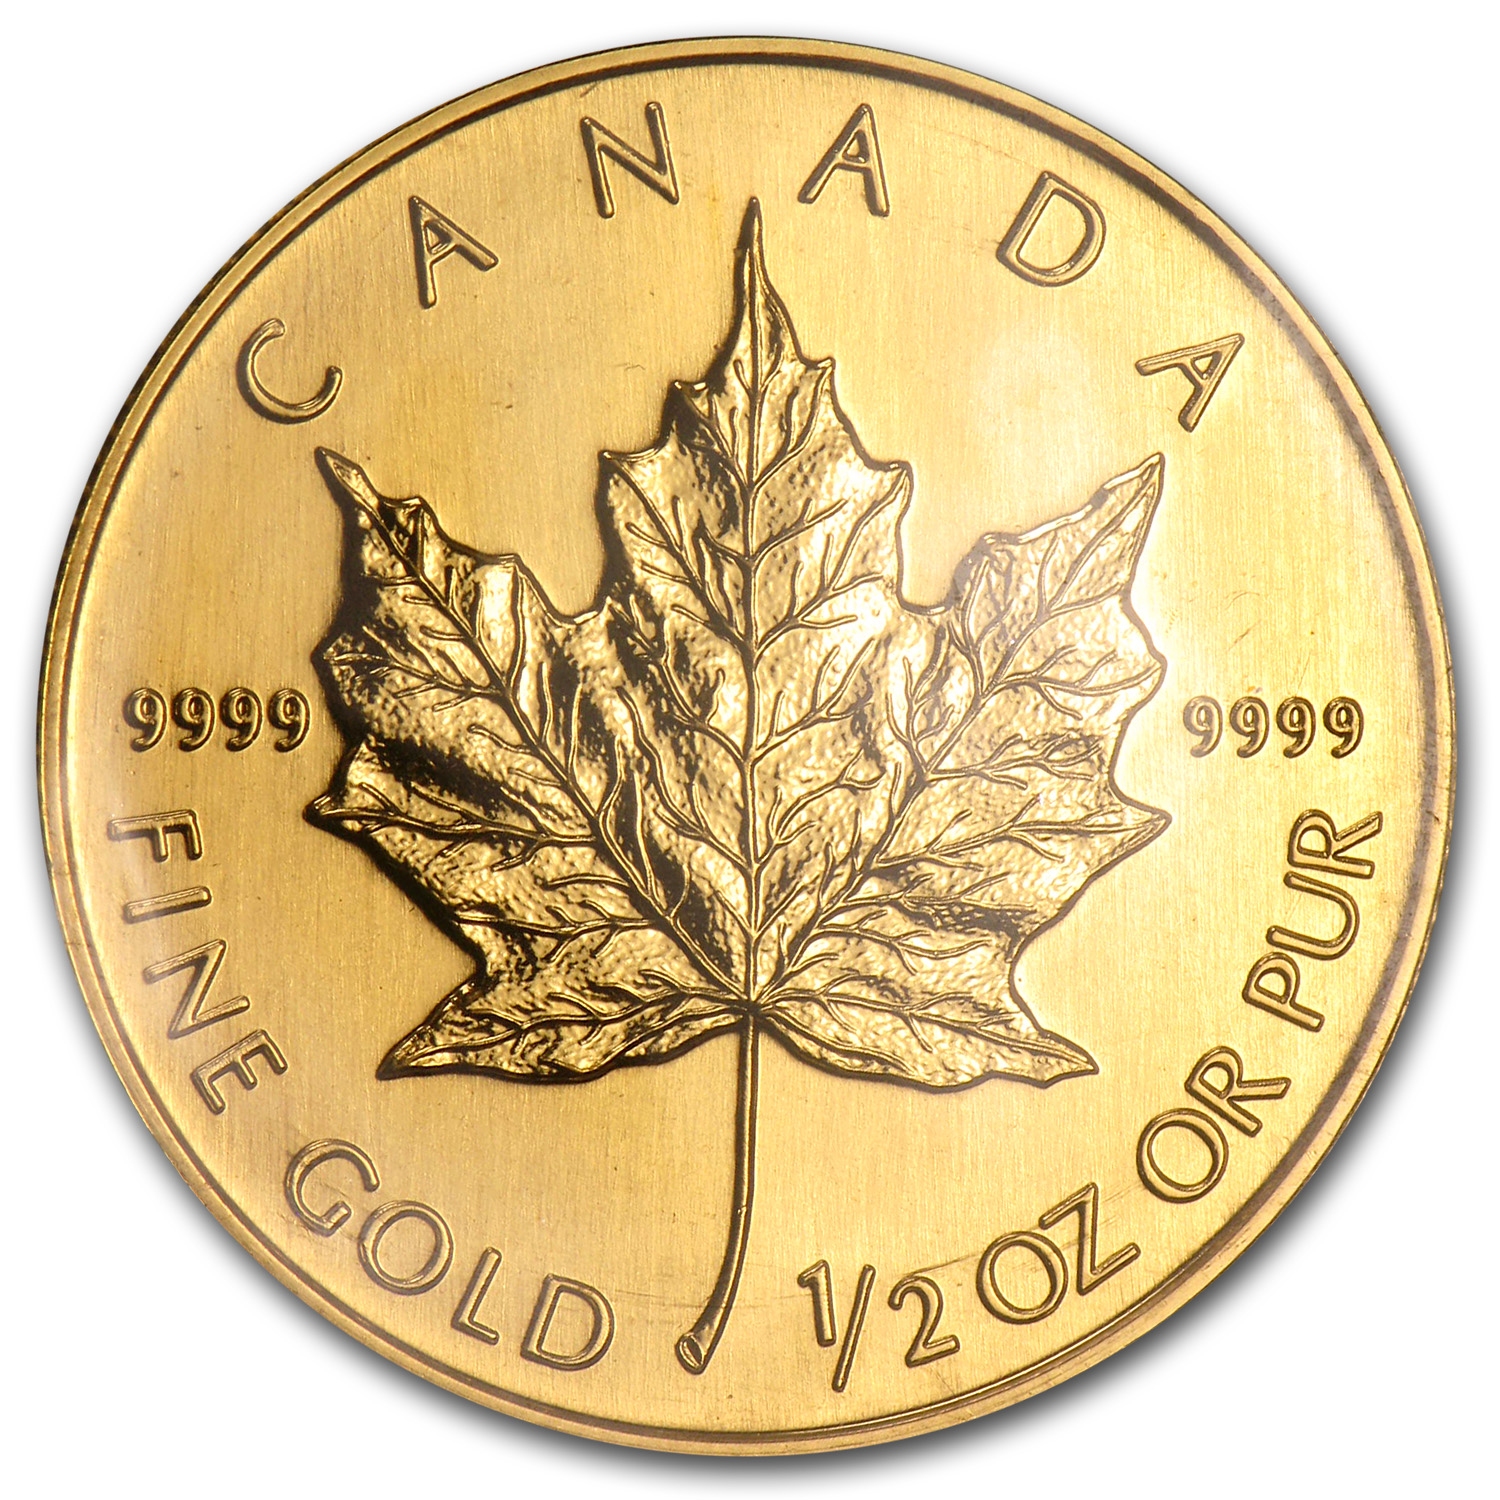 1996 Canada 1/2 oz Gold Maple Leaf BU